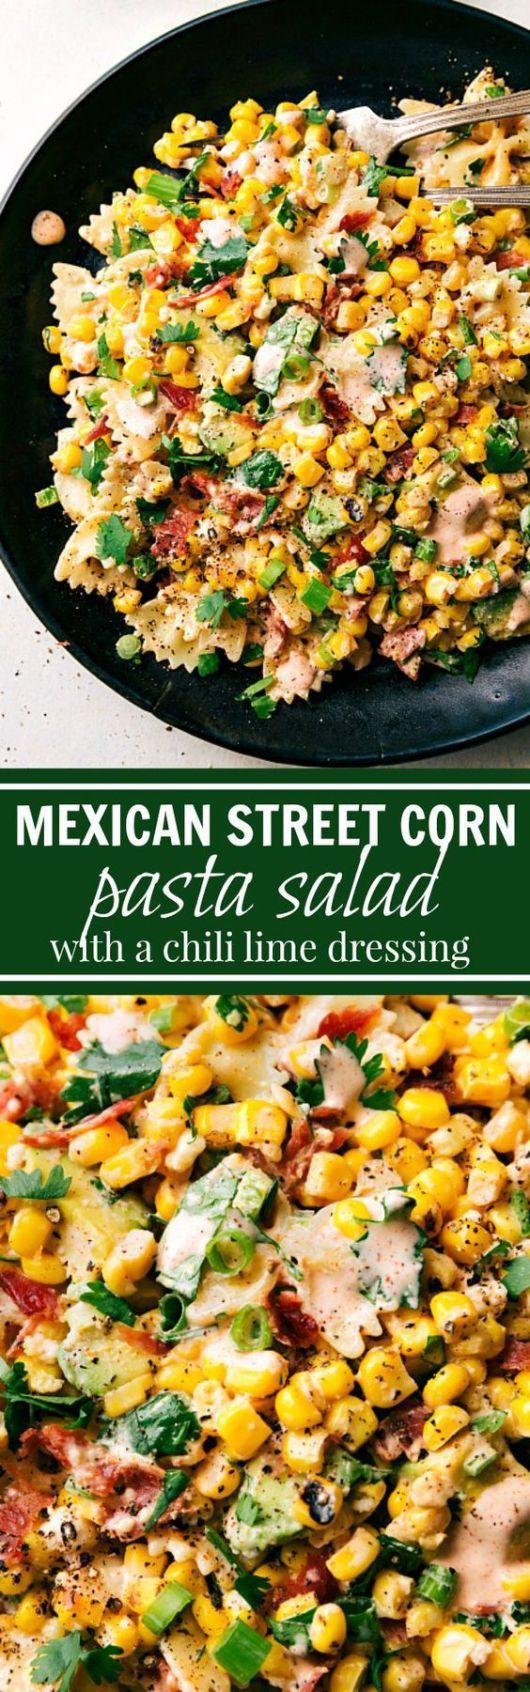 Mexican Street Corn Pasta Salad Recipe via Chelsea's Messy Apron - A delicious MEXICAN STREET CORN Pasta salad with tons of veggies, bacon, and a simple creamy CHILI LIME dressing. Easy Pasta Salad Recipes - The BEST Yummy Barbecue Side Dishes, Potluck Favorites and Summer Dinner Party Crowd Pleasers #pastafoodrecipes